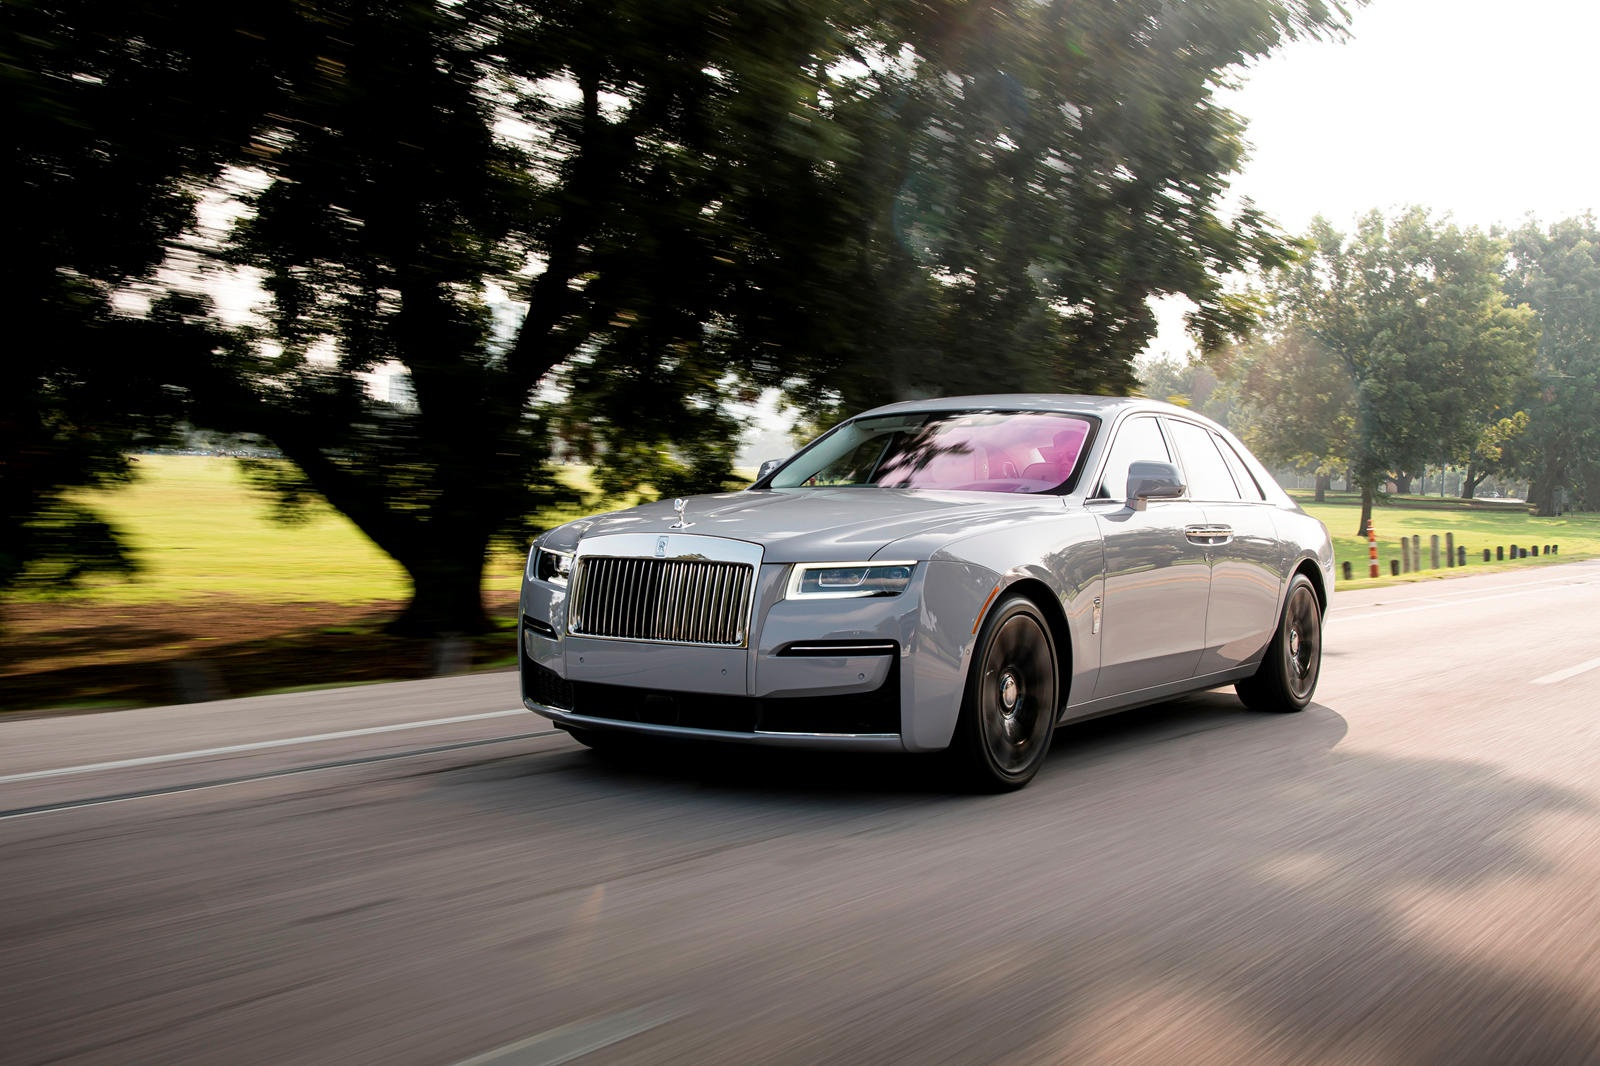 Danh gia Rolls-Royce Ghost 2021 anh 31